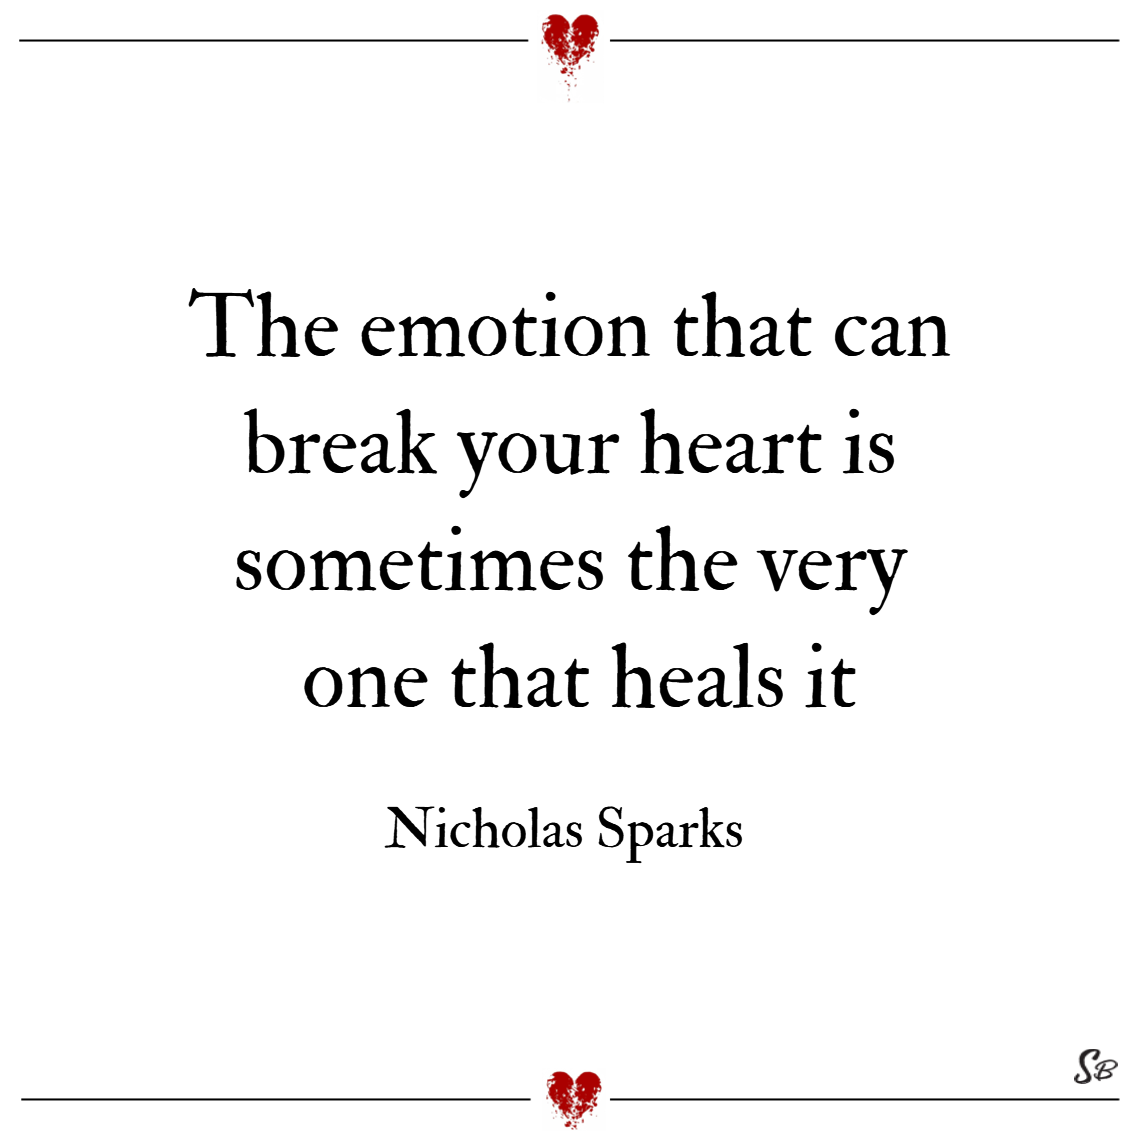 The emotion that can break your heart is sometimes the very one that heals it. – nicholas sparks